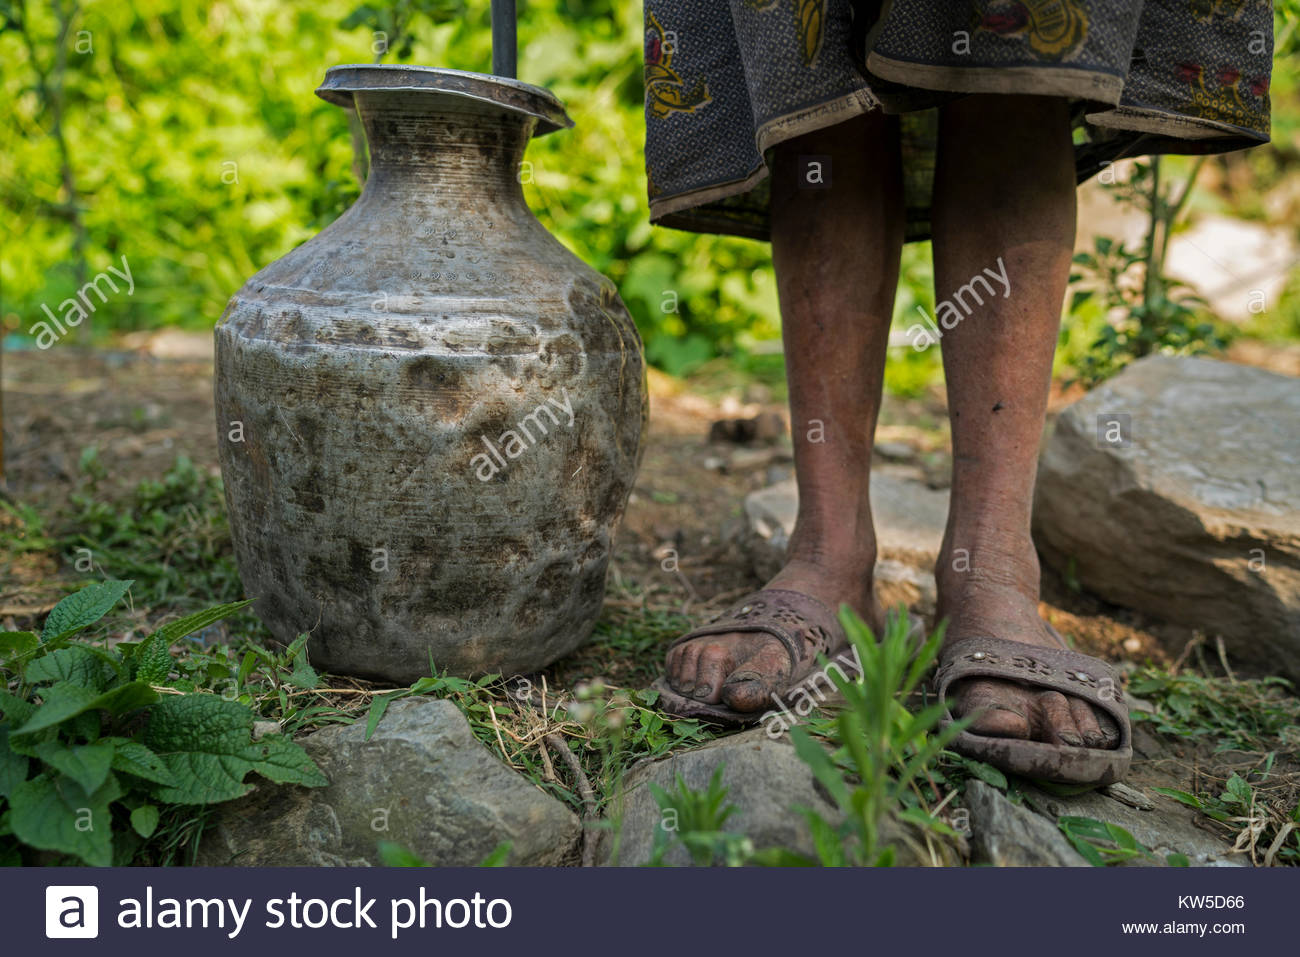 A person stands next to a metal container. - Stock Image